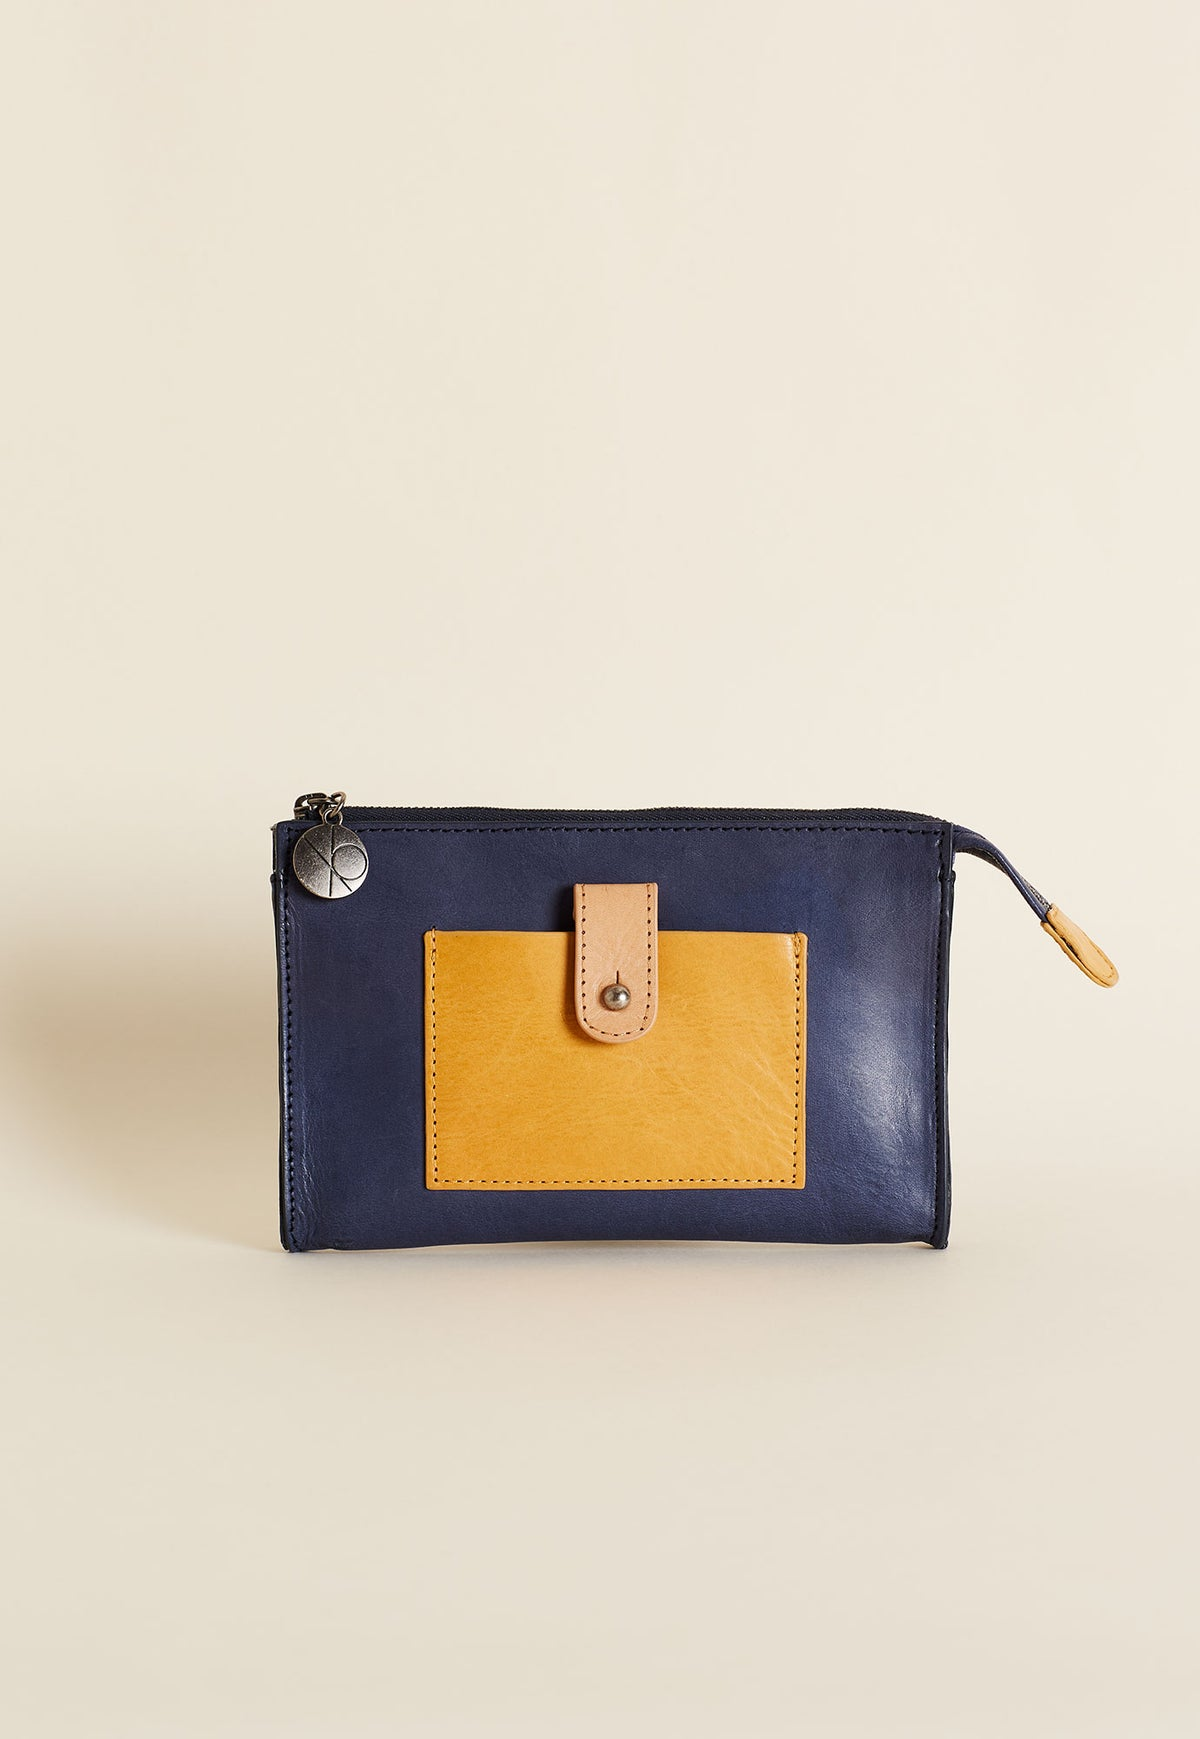 Piper Wallet - Indigo